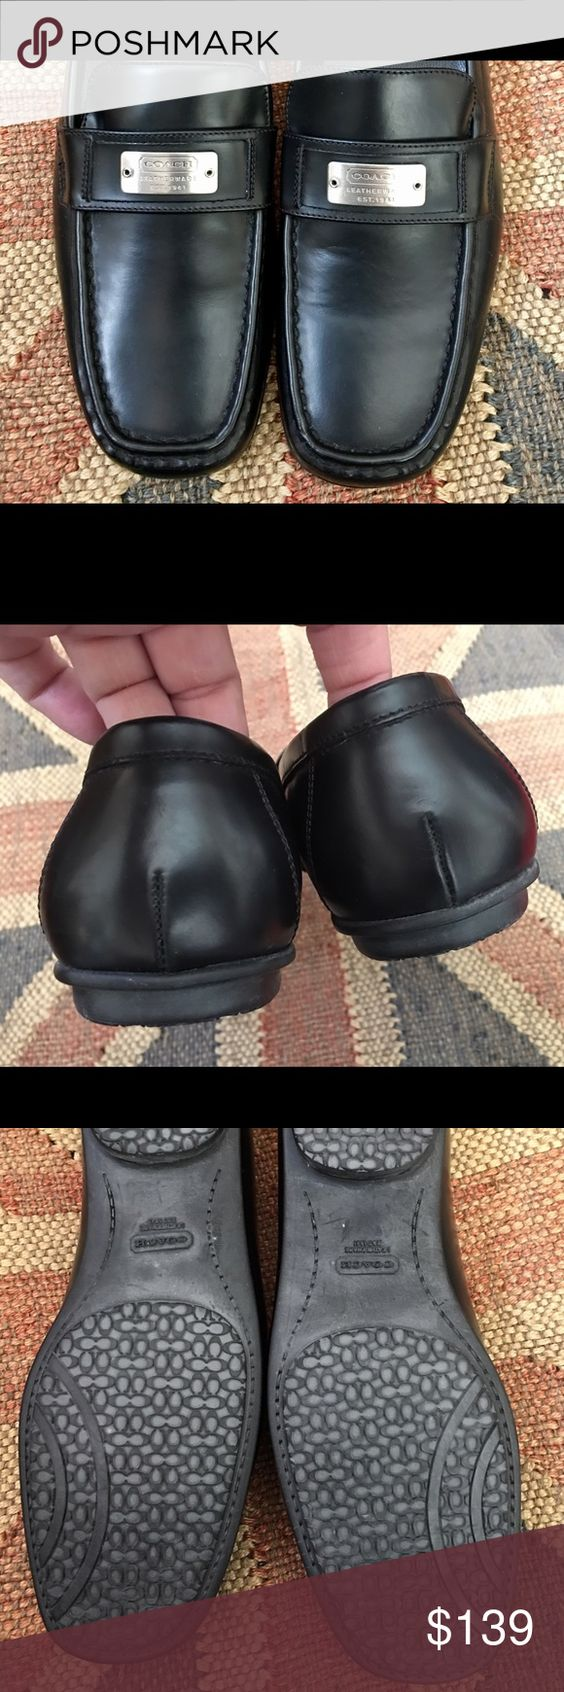 """Coach Black Italian Leather Ladies Shoes NWOT This is an authentic pair of coach ladies black leather slip on shoes. Never worn. Rubber bottoms covered in """"C's"""". The rubber bottom give these shoes incredible grip. Ladies size 8 medium. Adorable! Made in Italy. Coach Shoes Flats & Loafers"""